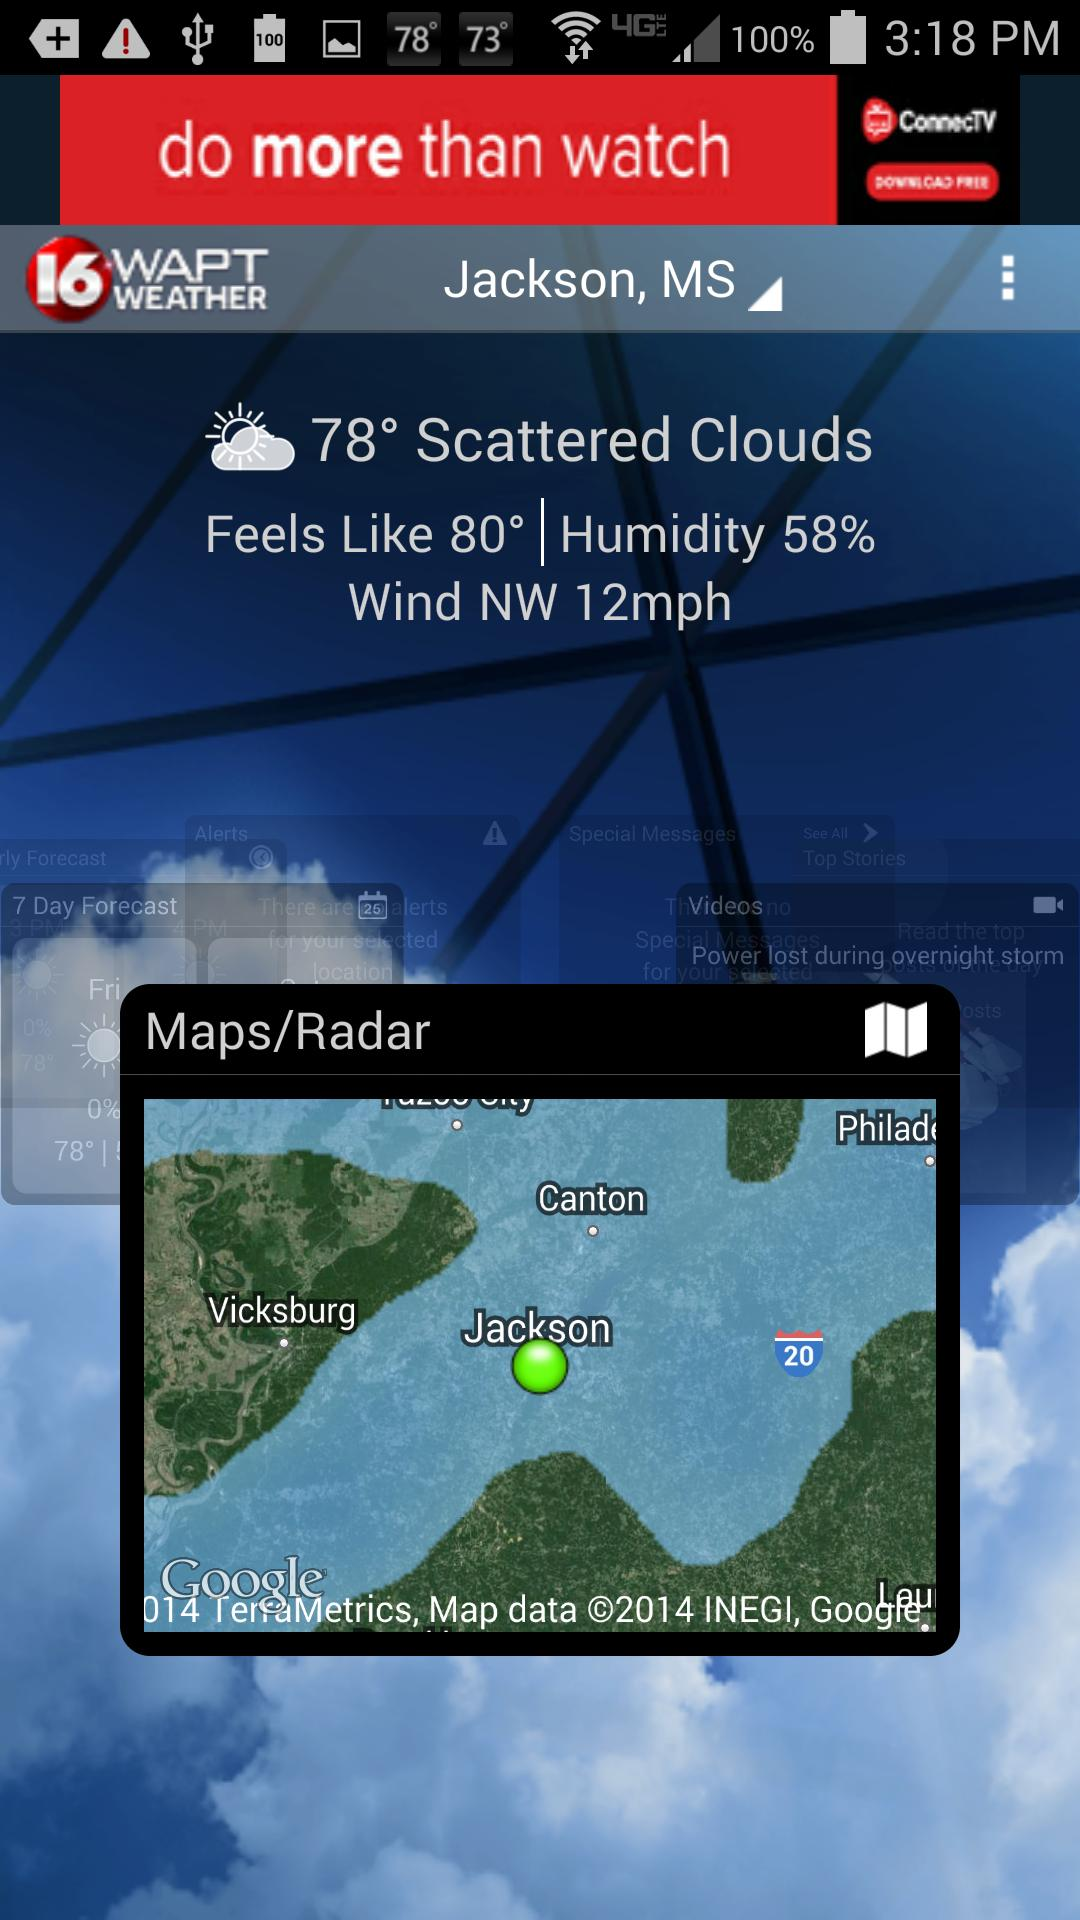 16 WAPT Weather for Android - APK Download